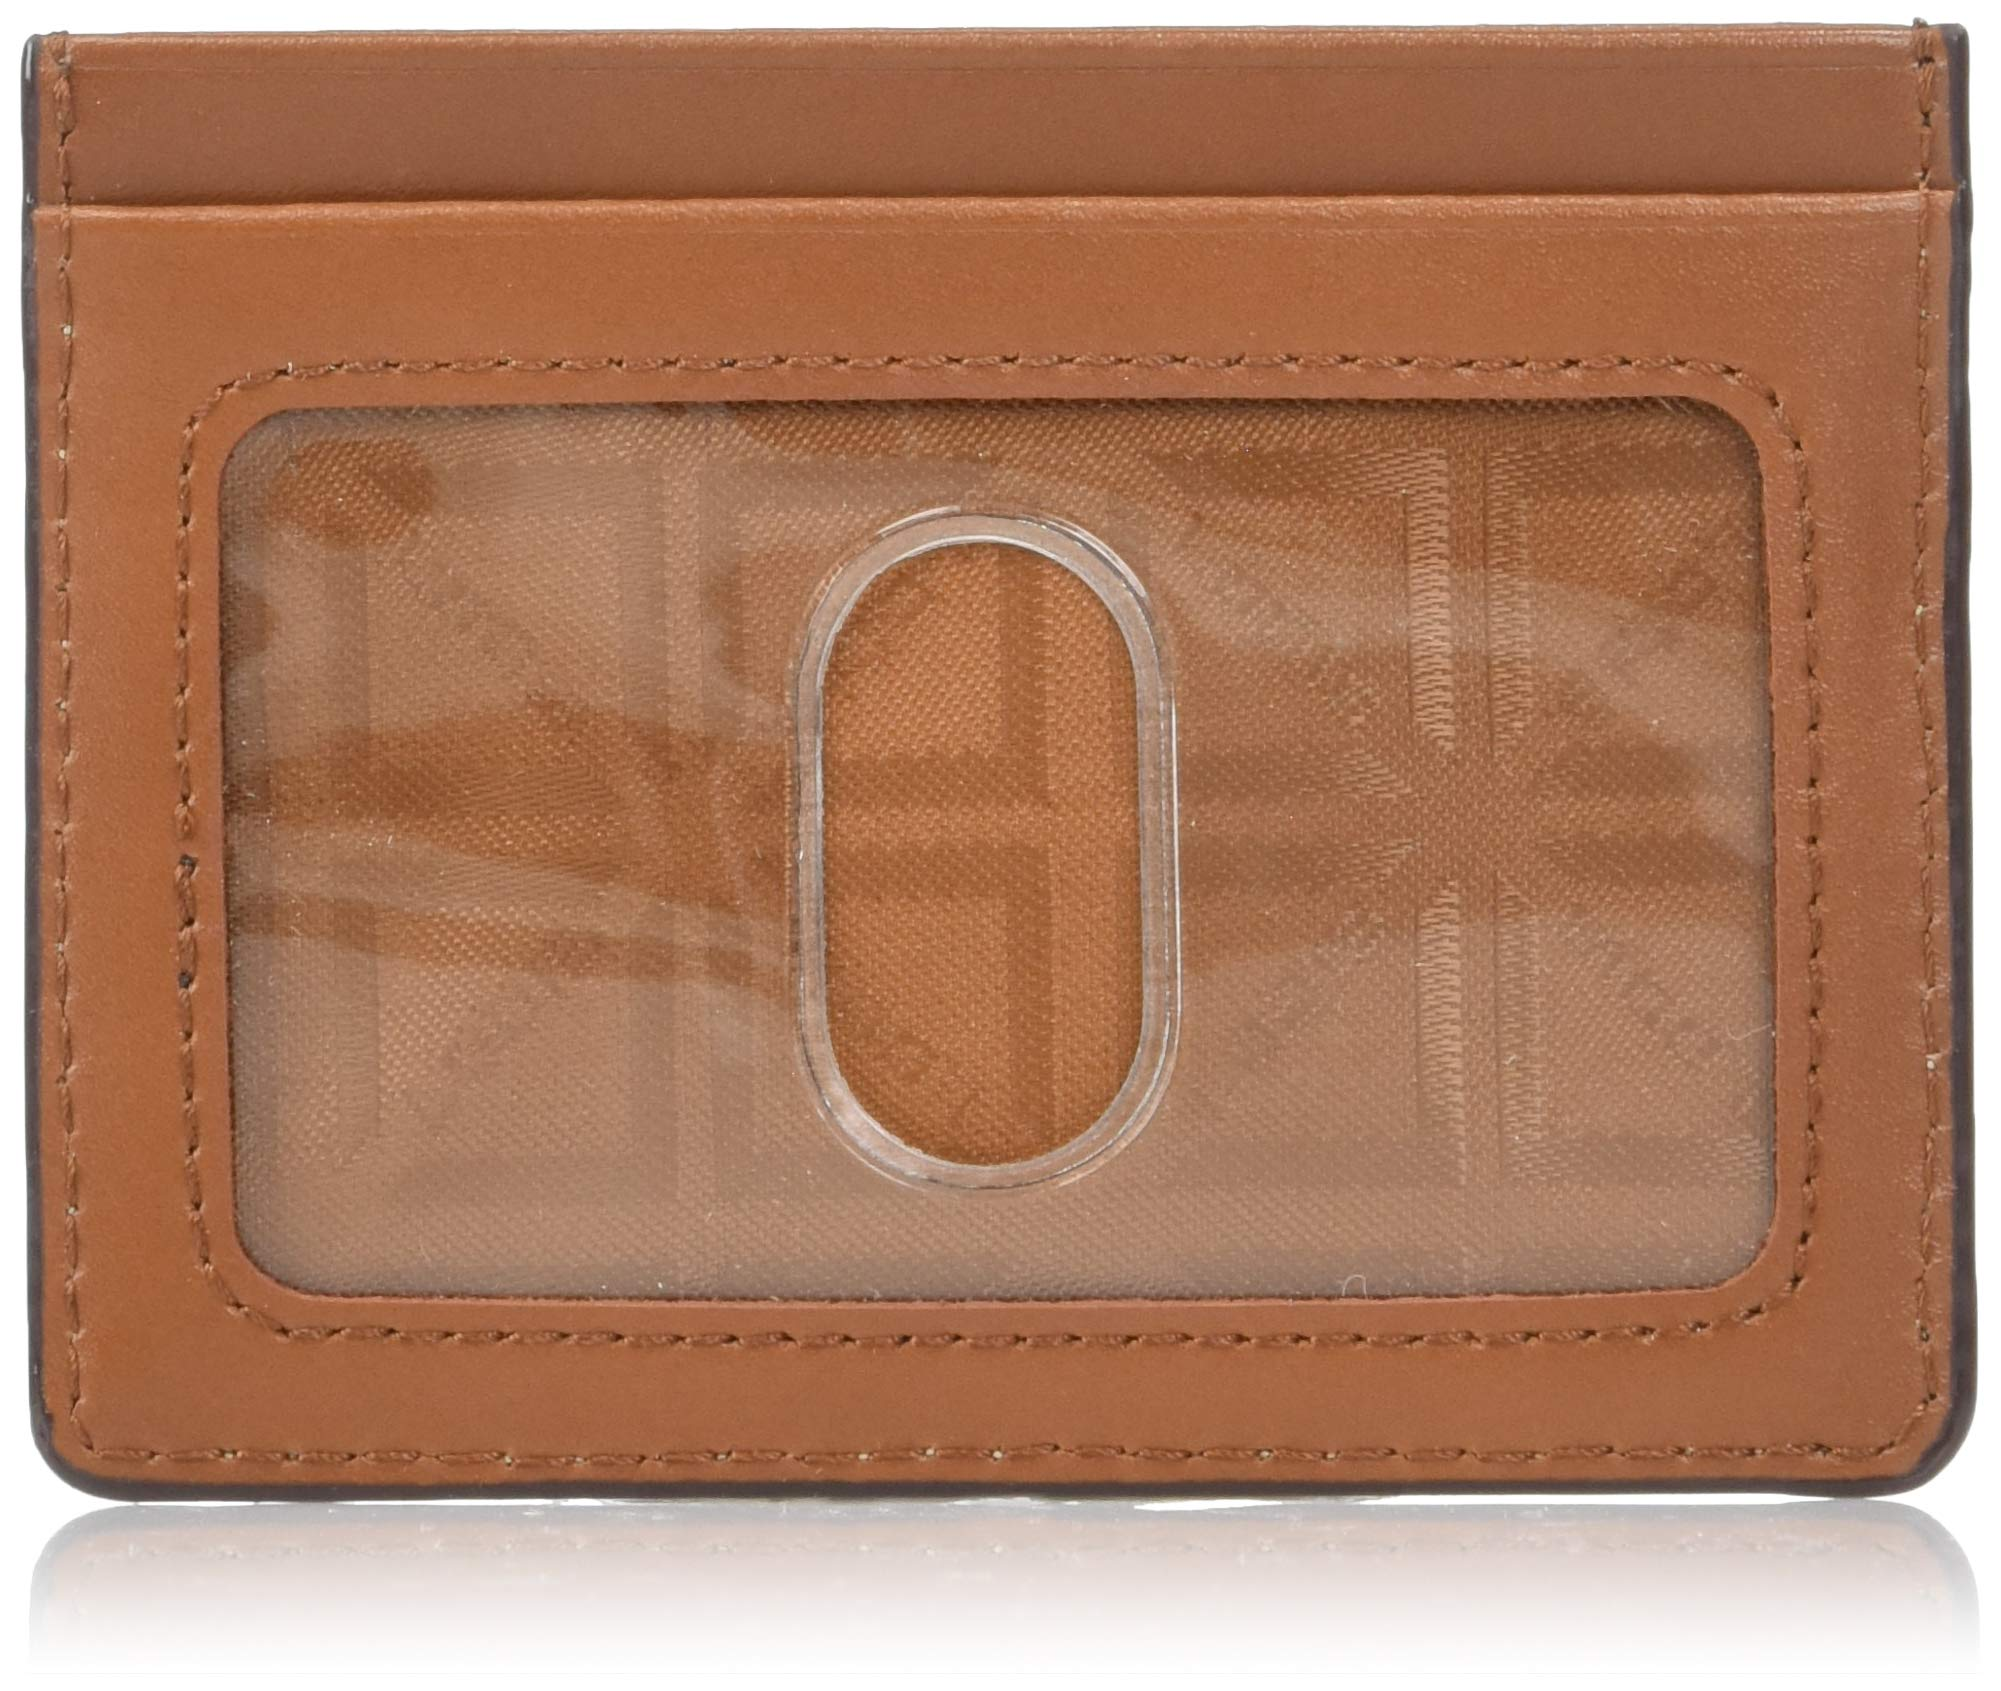 Lodis Audrey RFID Mini ID Card Case, sequoia/papaya by Lodis